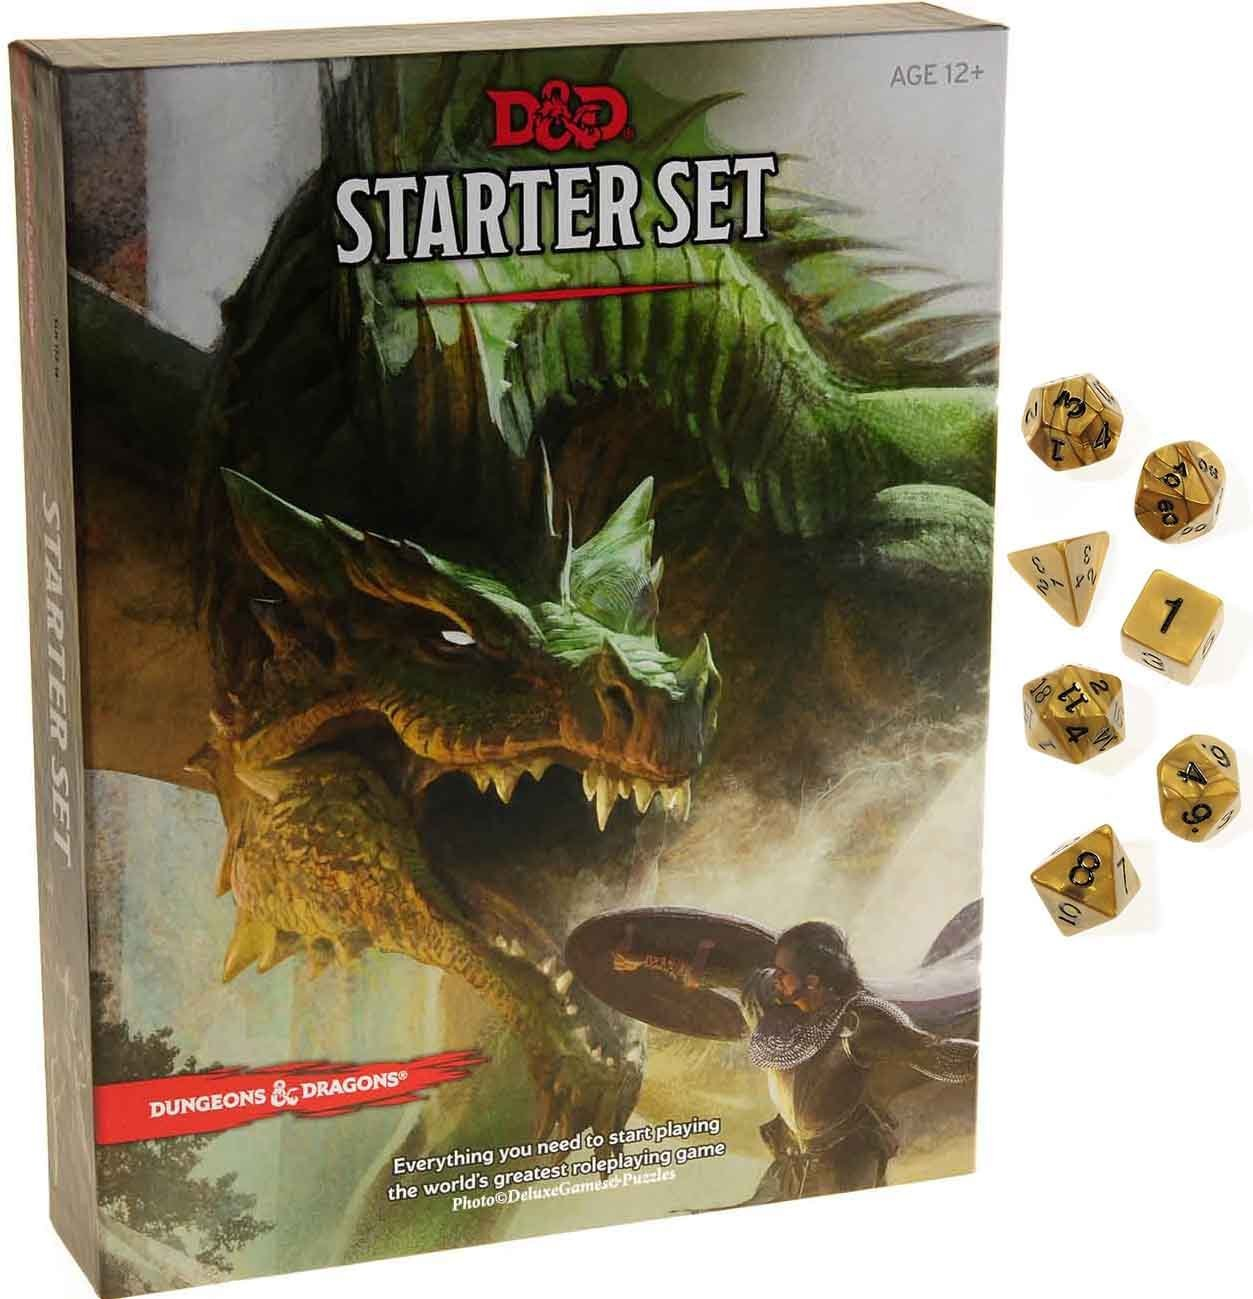 Dungeons & Dragons Starter Set _ with Bonus Gold Swirl 7-dice Set _ D&D Starter Set by Deluxe Games and Puzzles